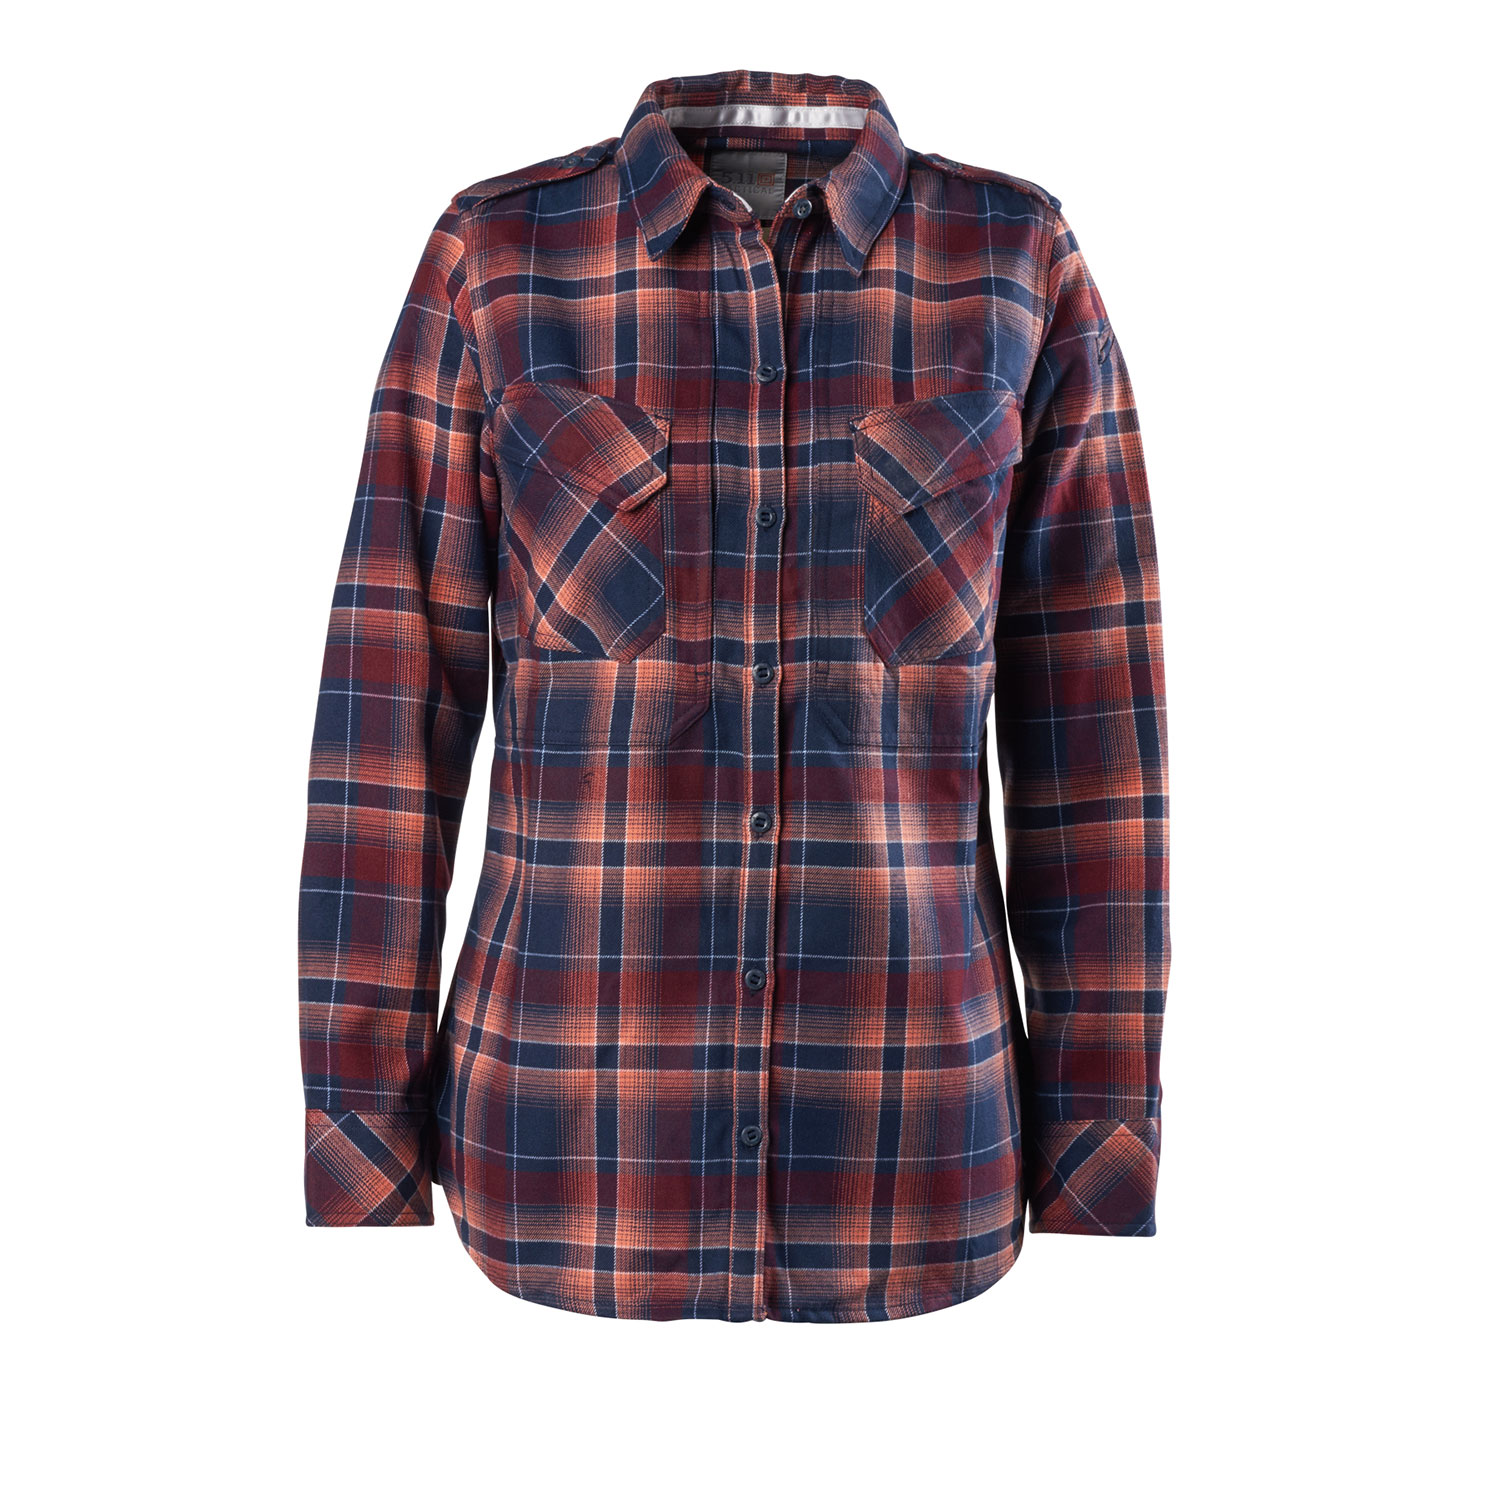 5.11 Women's Heartbreaker Flannel Shirt